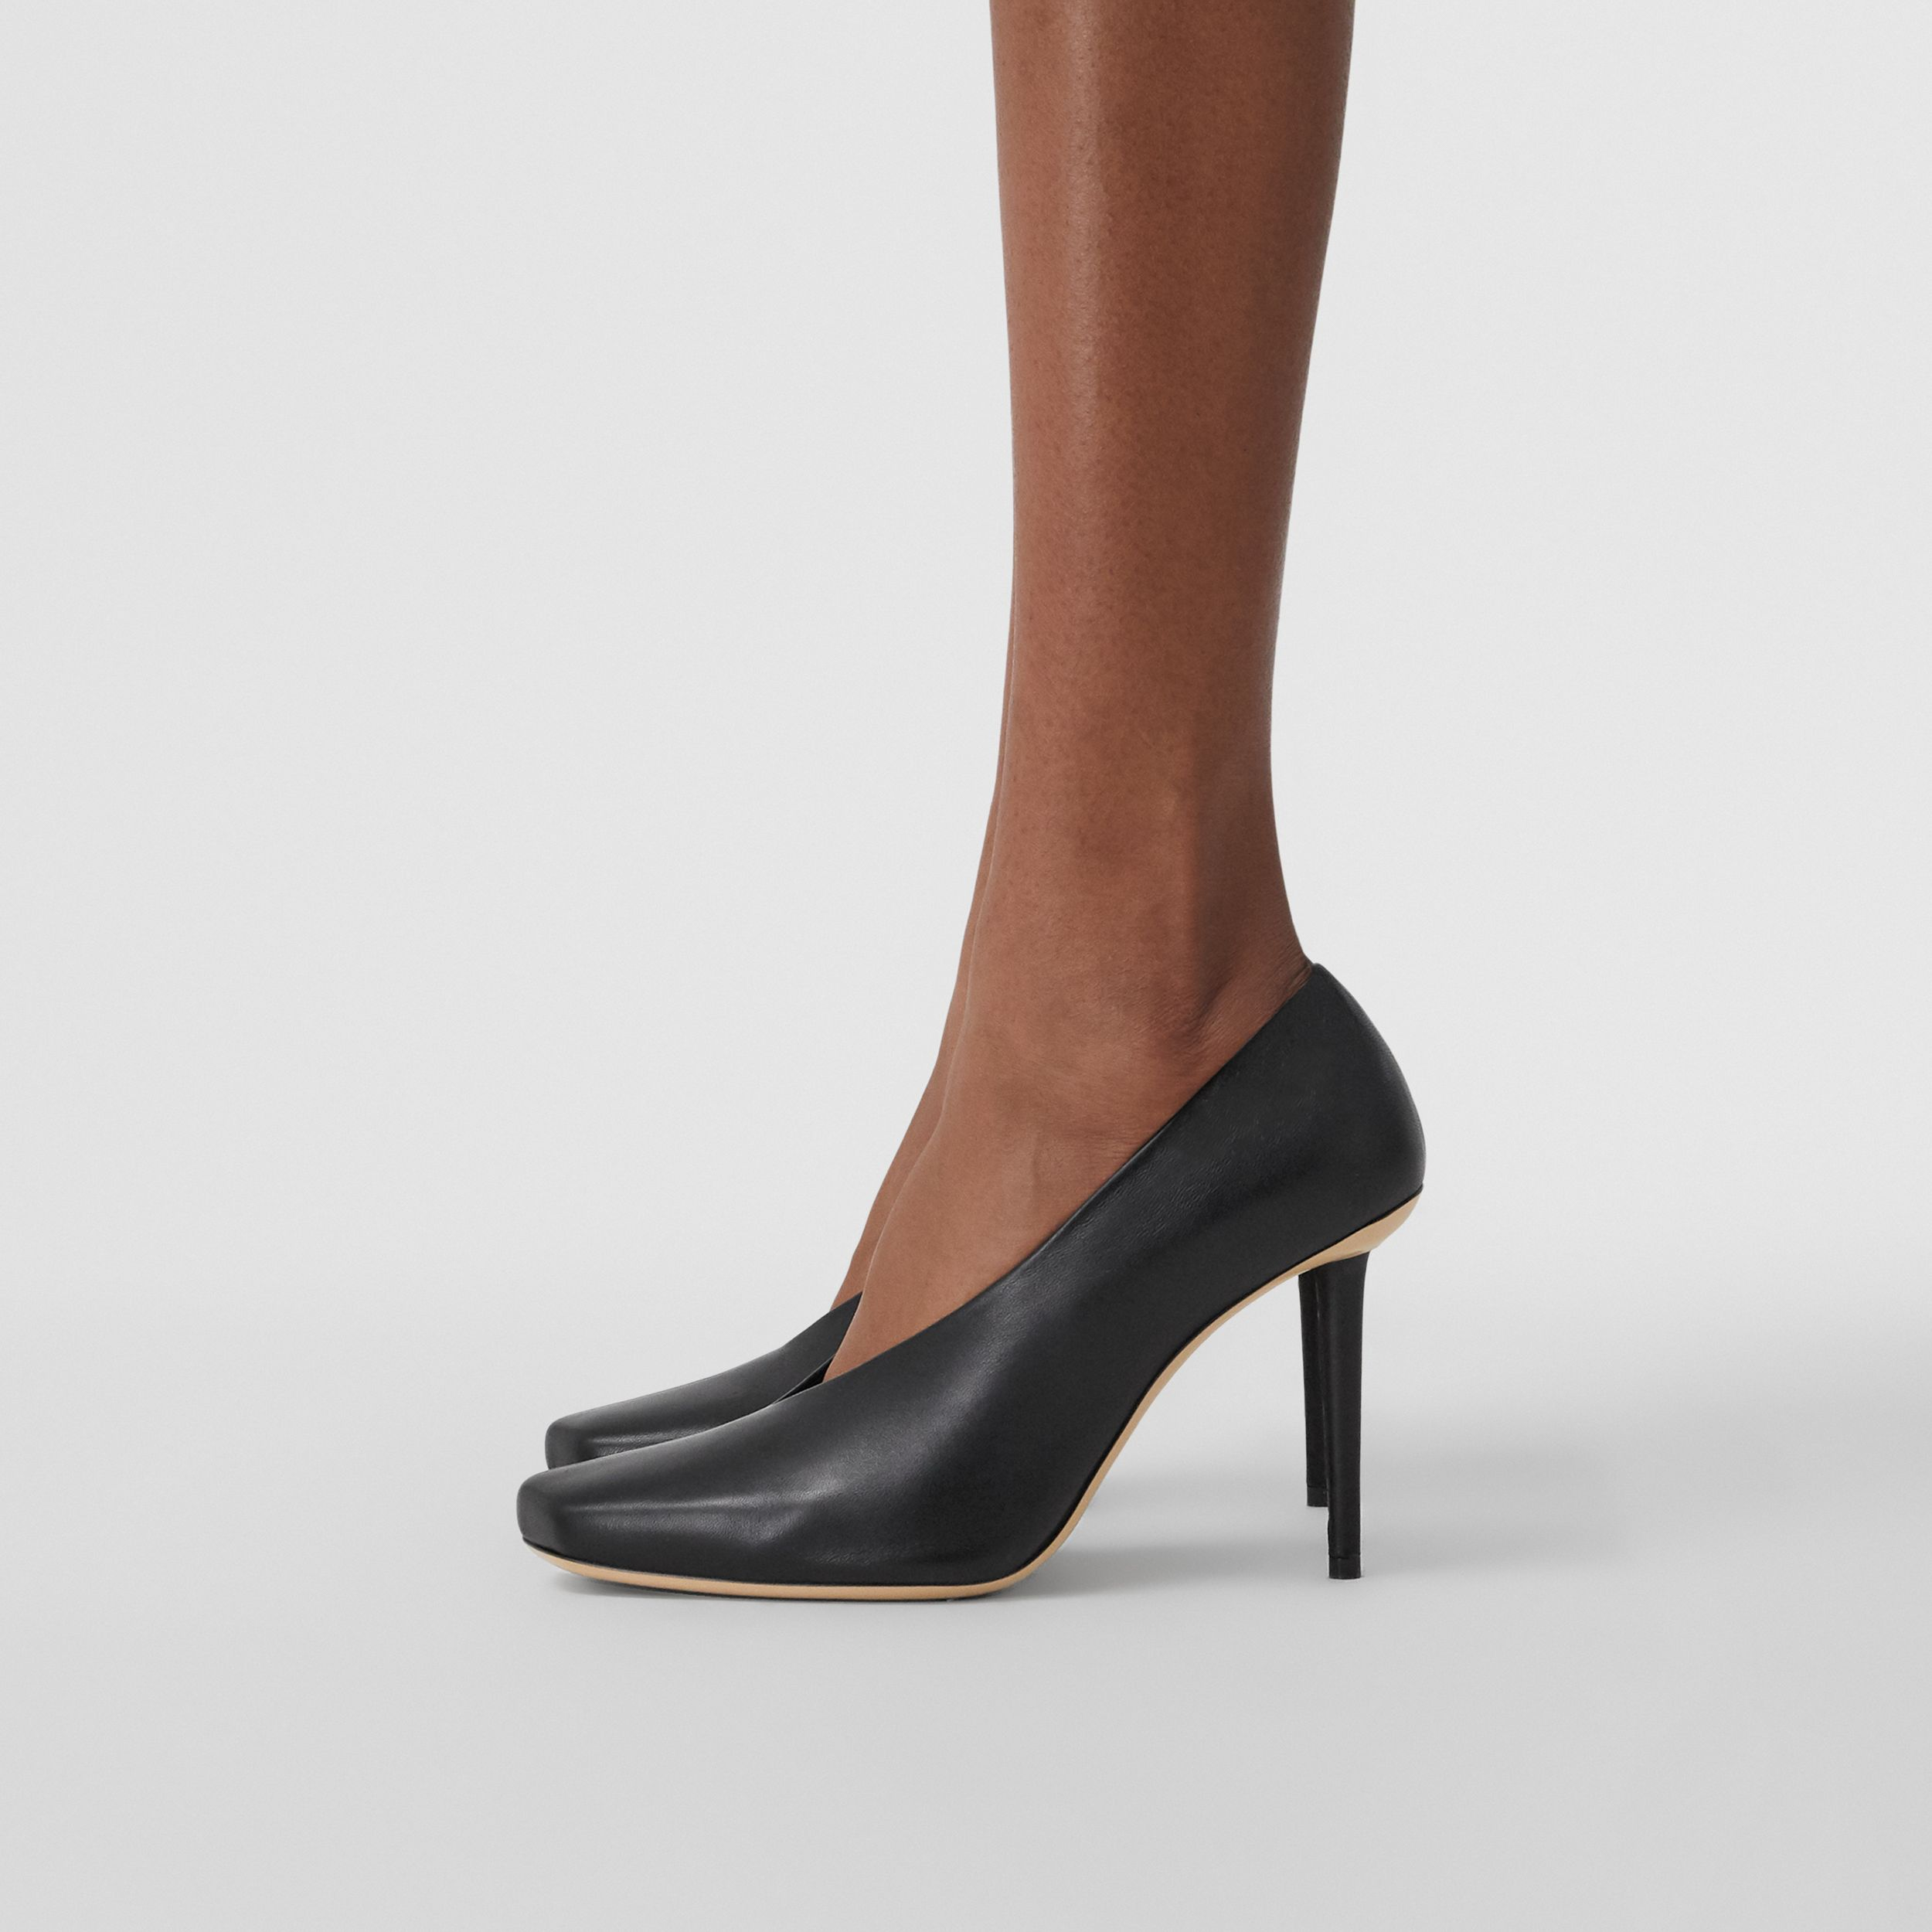 Lambskin Sculptural Pumps in Black - Women | Burberry Australia - 3